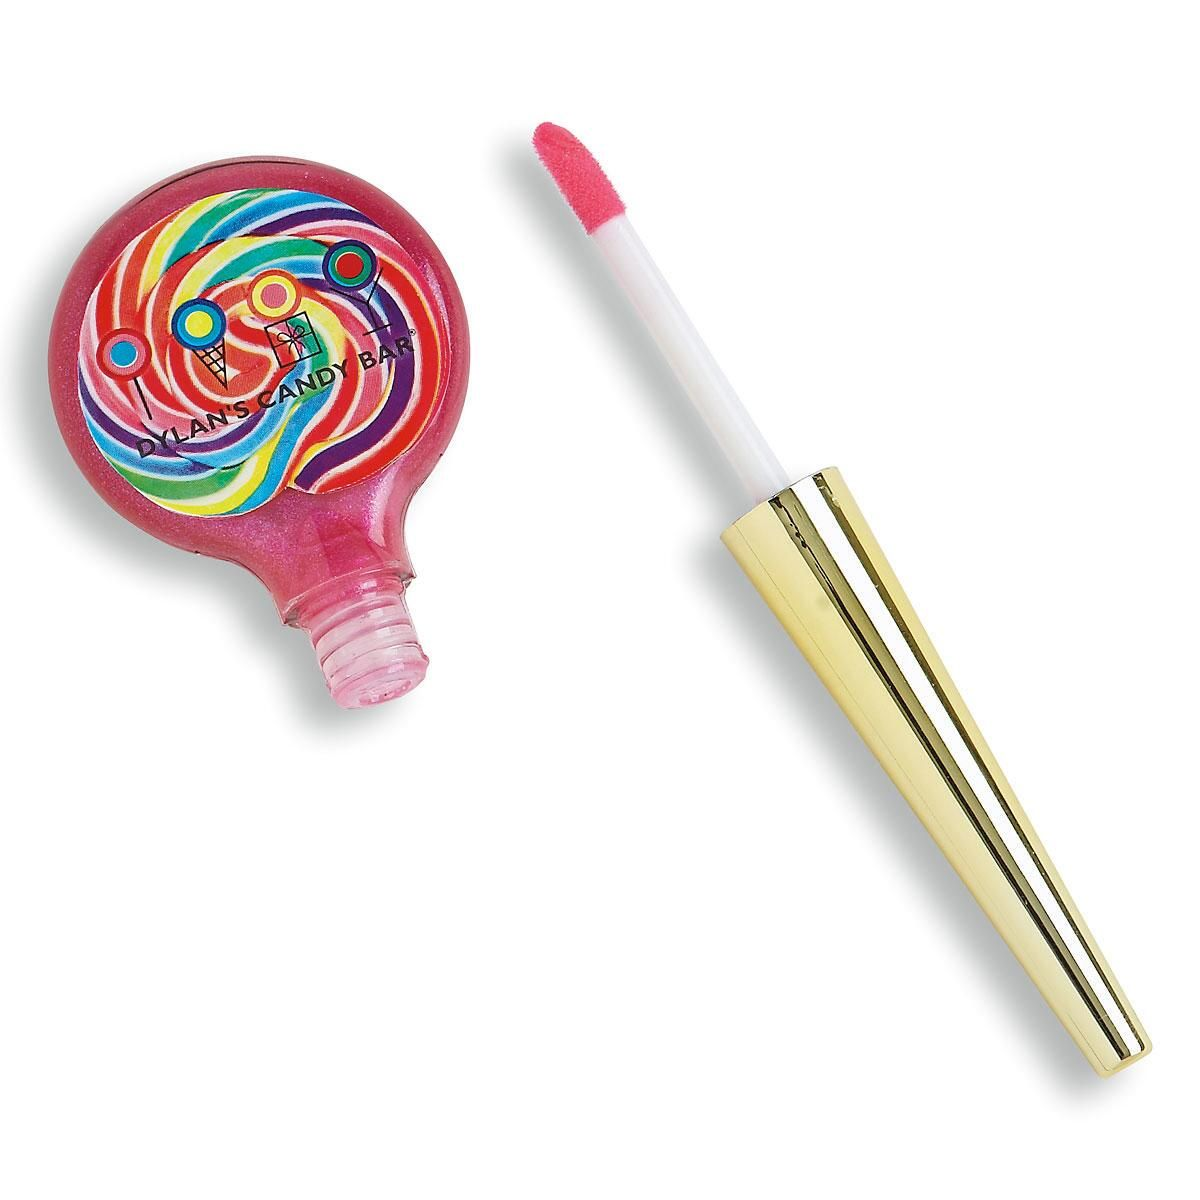 Whirly Pop Lip Gloss by Dylan's Candy Bar